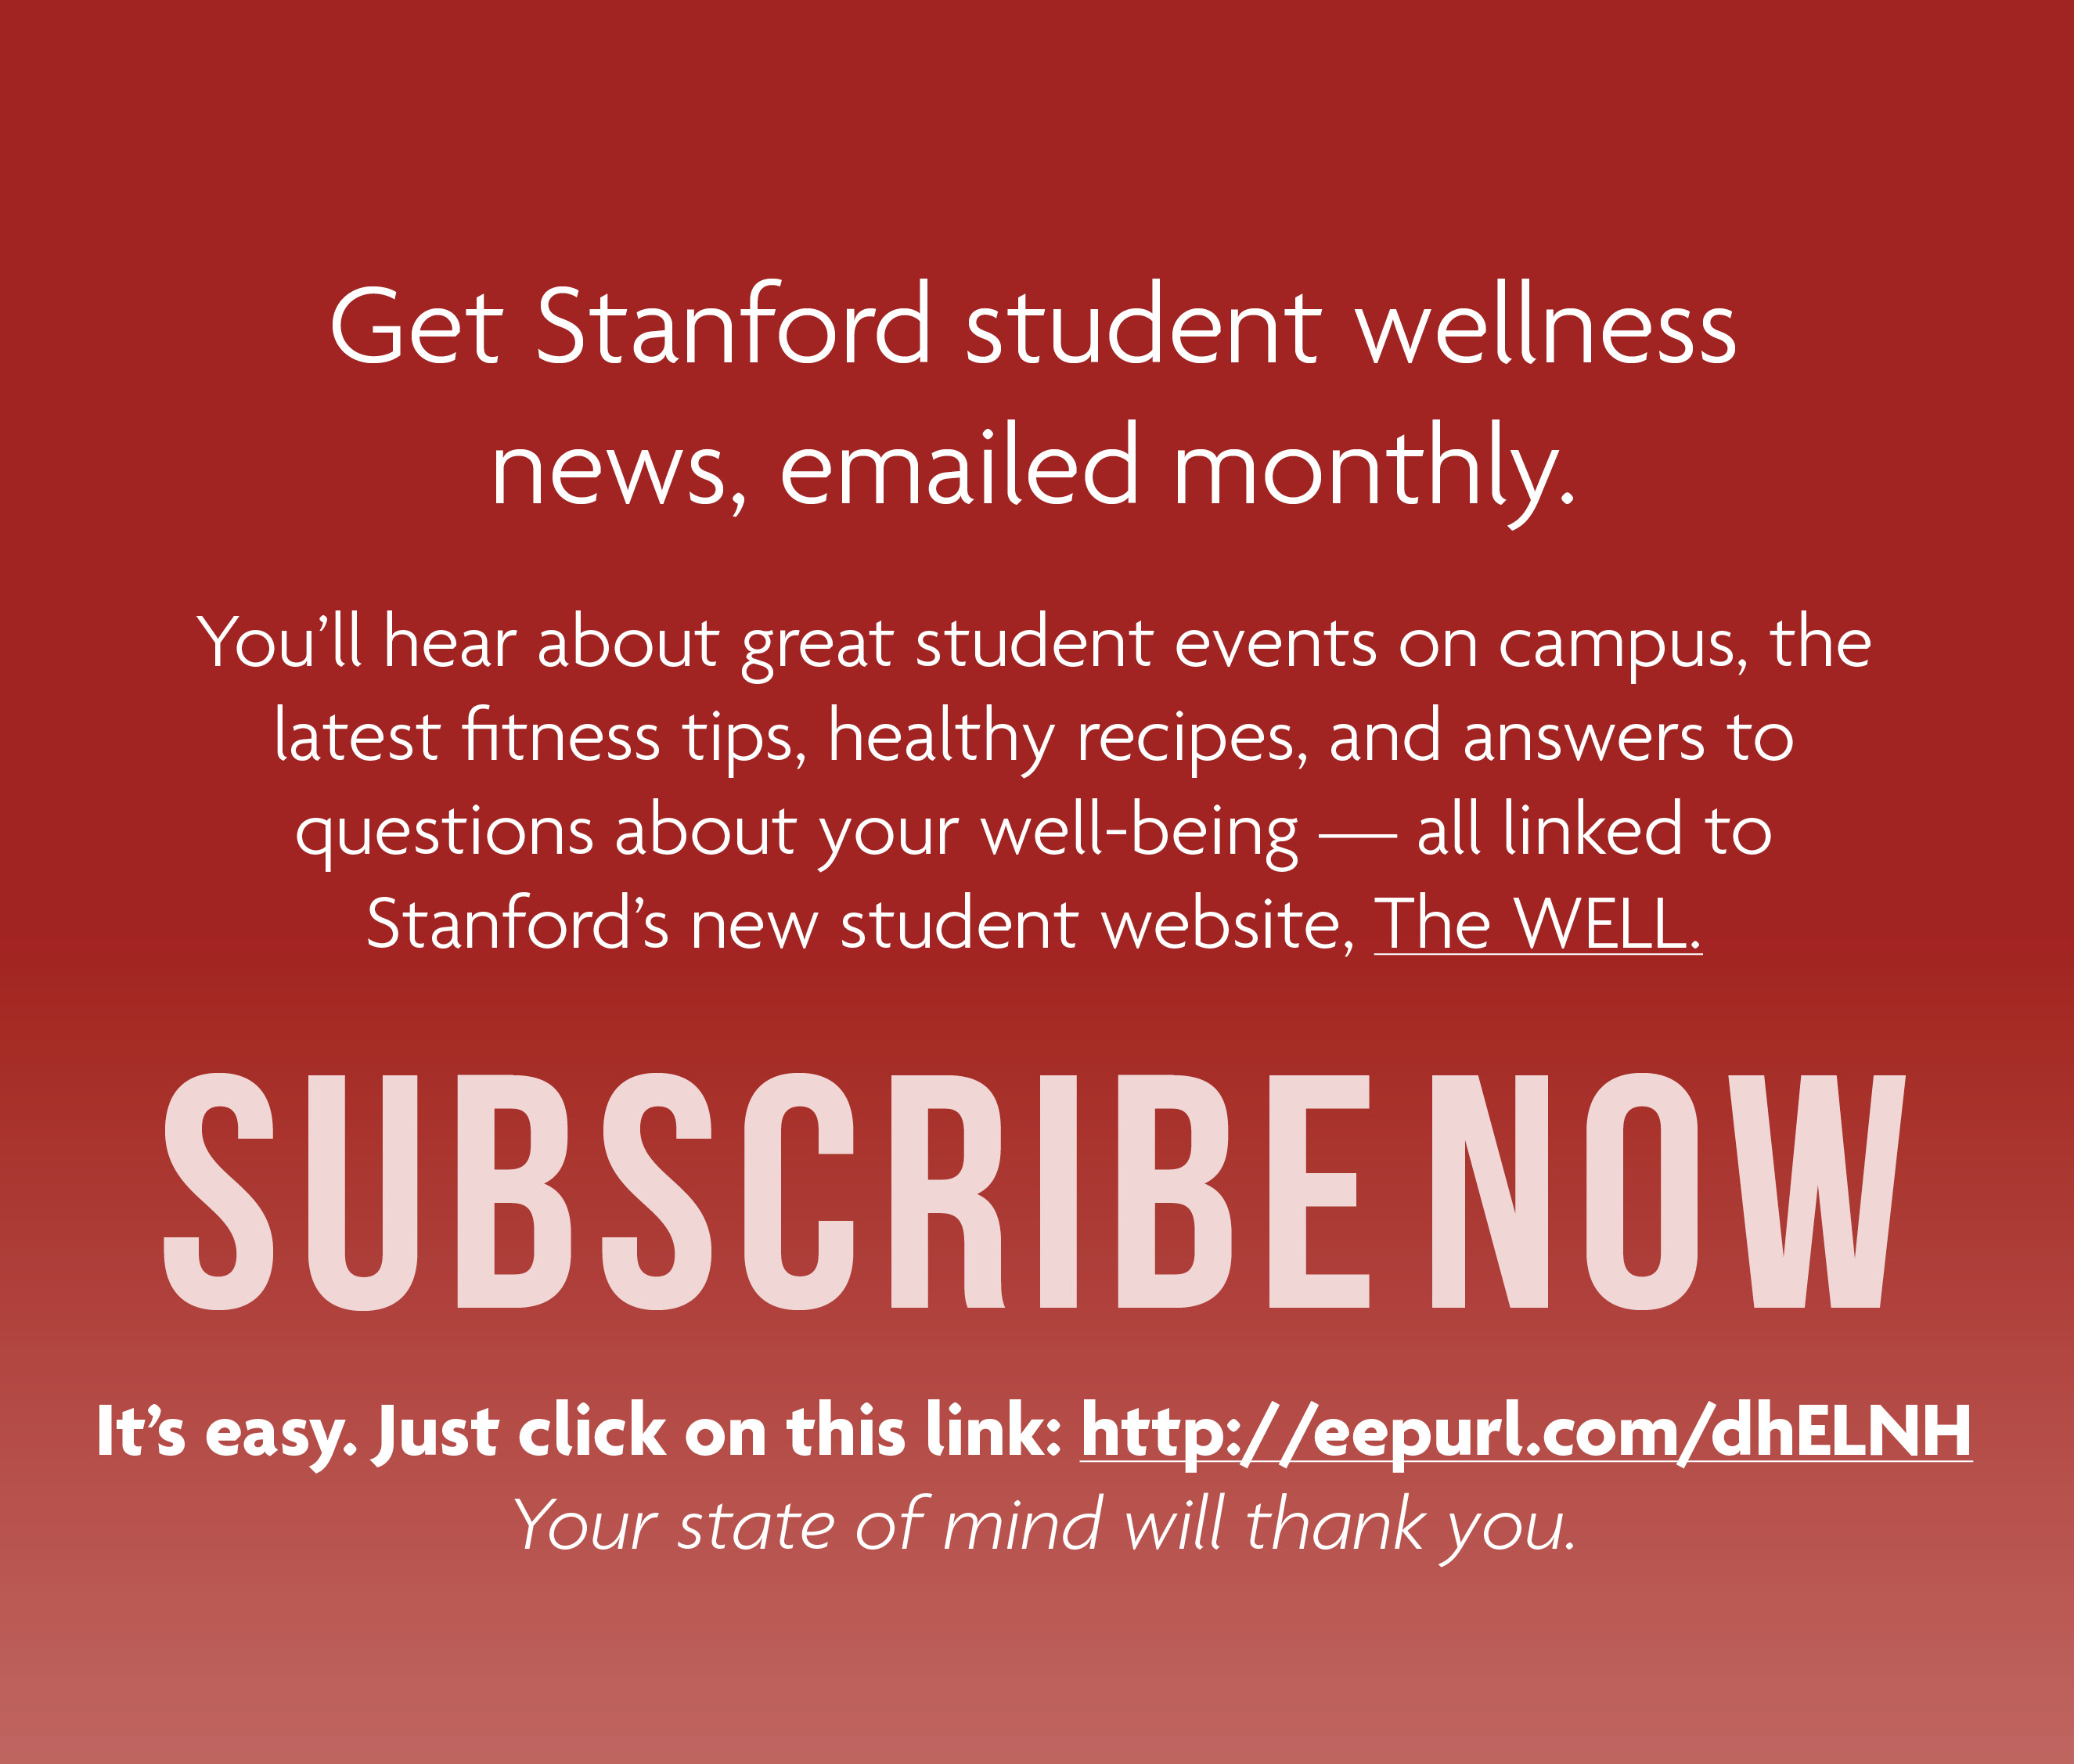 Get Stanford student wellness news, emailed monthly. Subscribe now! You'll hear about great student events on campus, the latest fitness tips, healthy recipes, and answers to questions about your well-being — all linked to Stanford's new student website, The WELL. All new subscribers will be entered into our upcoming drawing of a $100 Visa giftcard! It's easy. Just click on this link: http://eepurl.com/dhELNH to subscribe. Your state of mind will thank you.